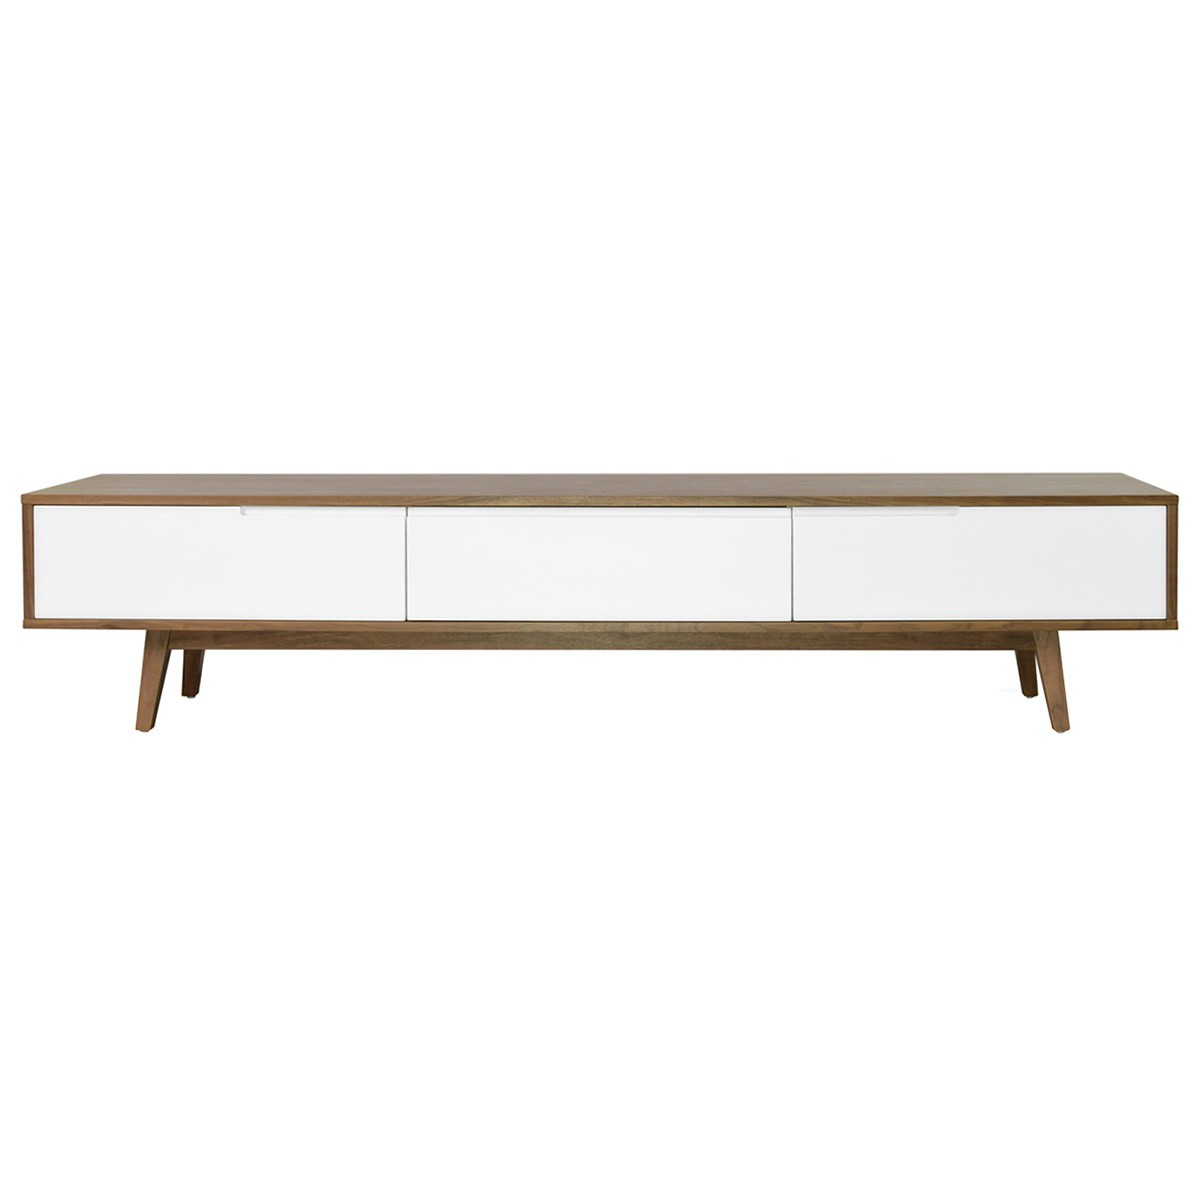 Martin 2 Drawer Flip Door Lowline TV Unit, 210cm, Walnut / White